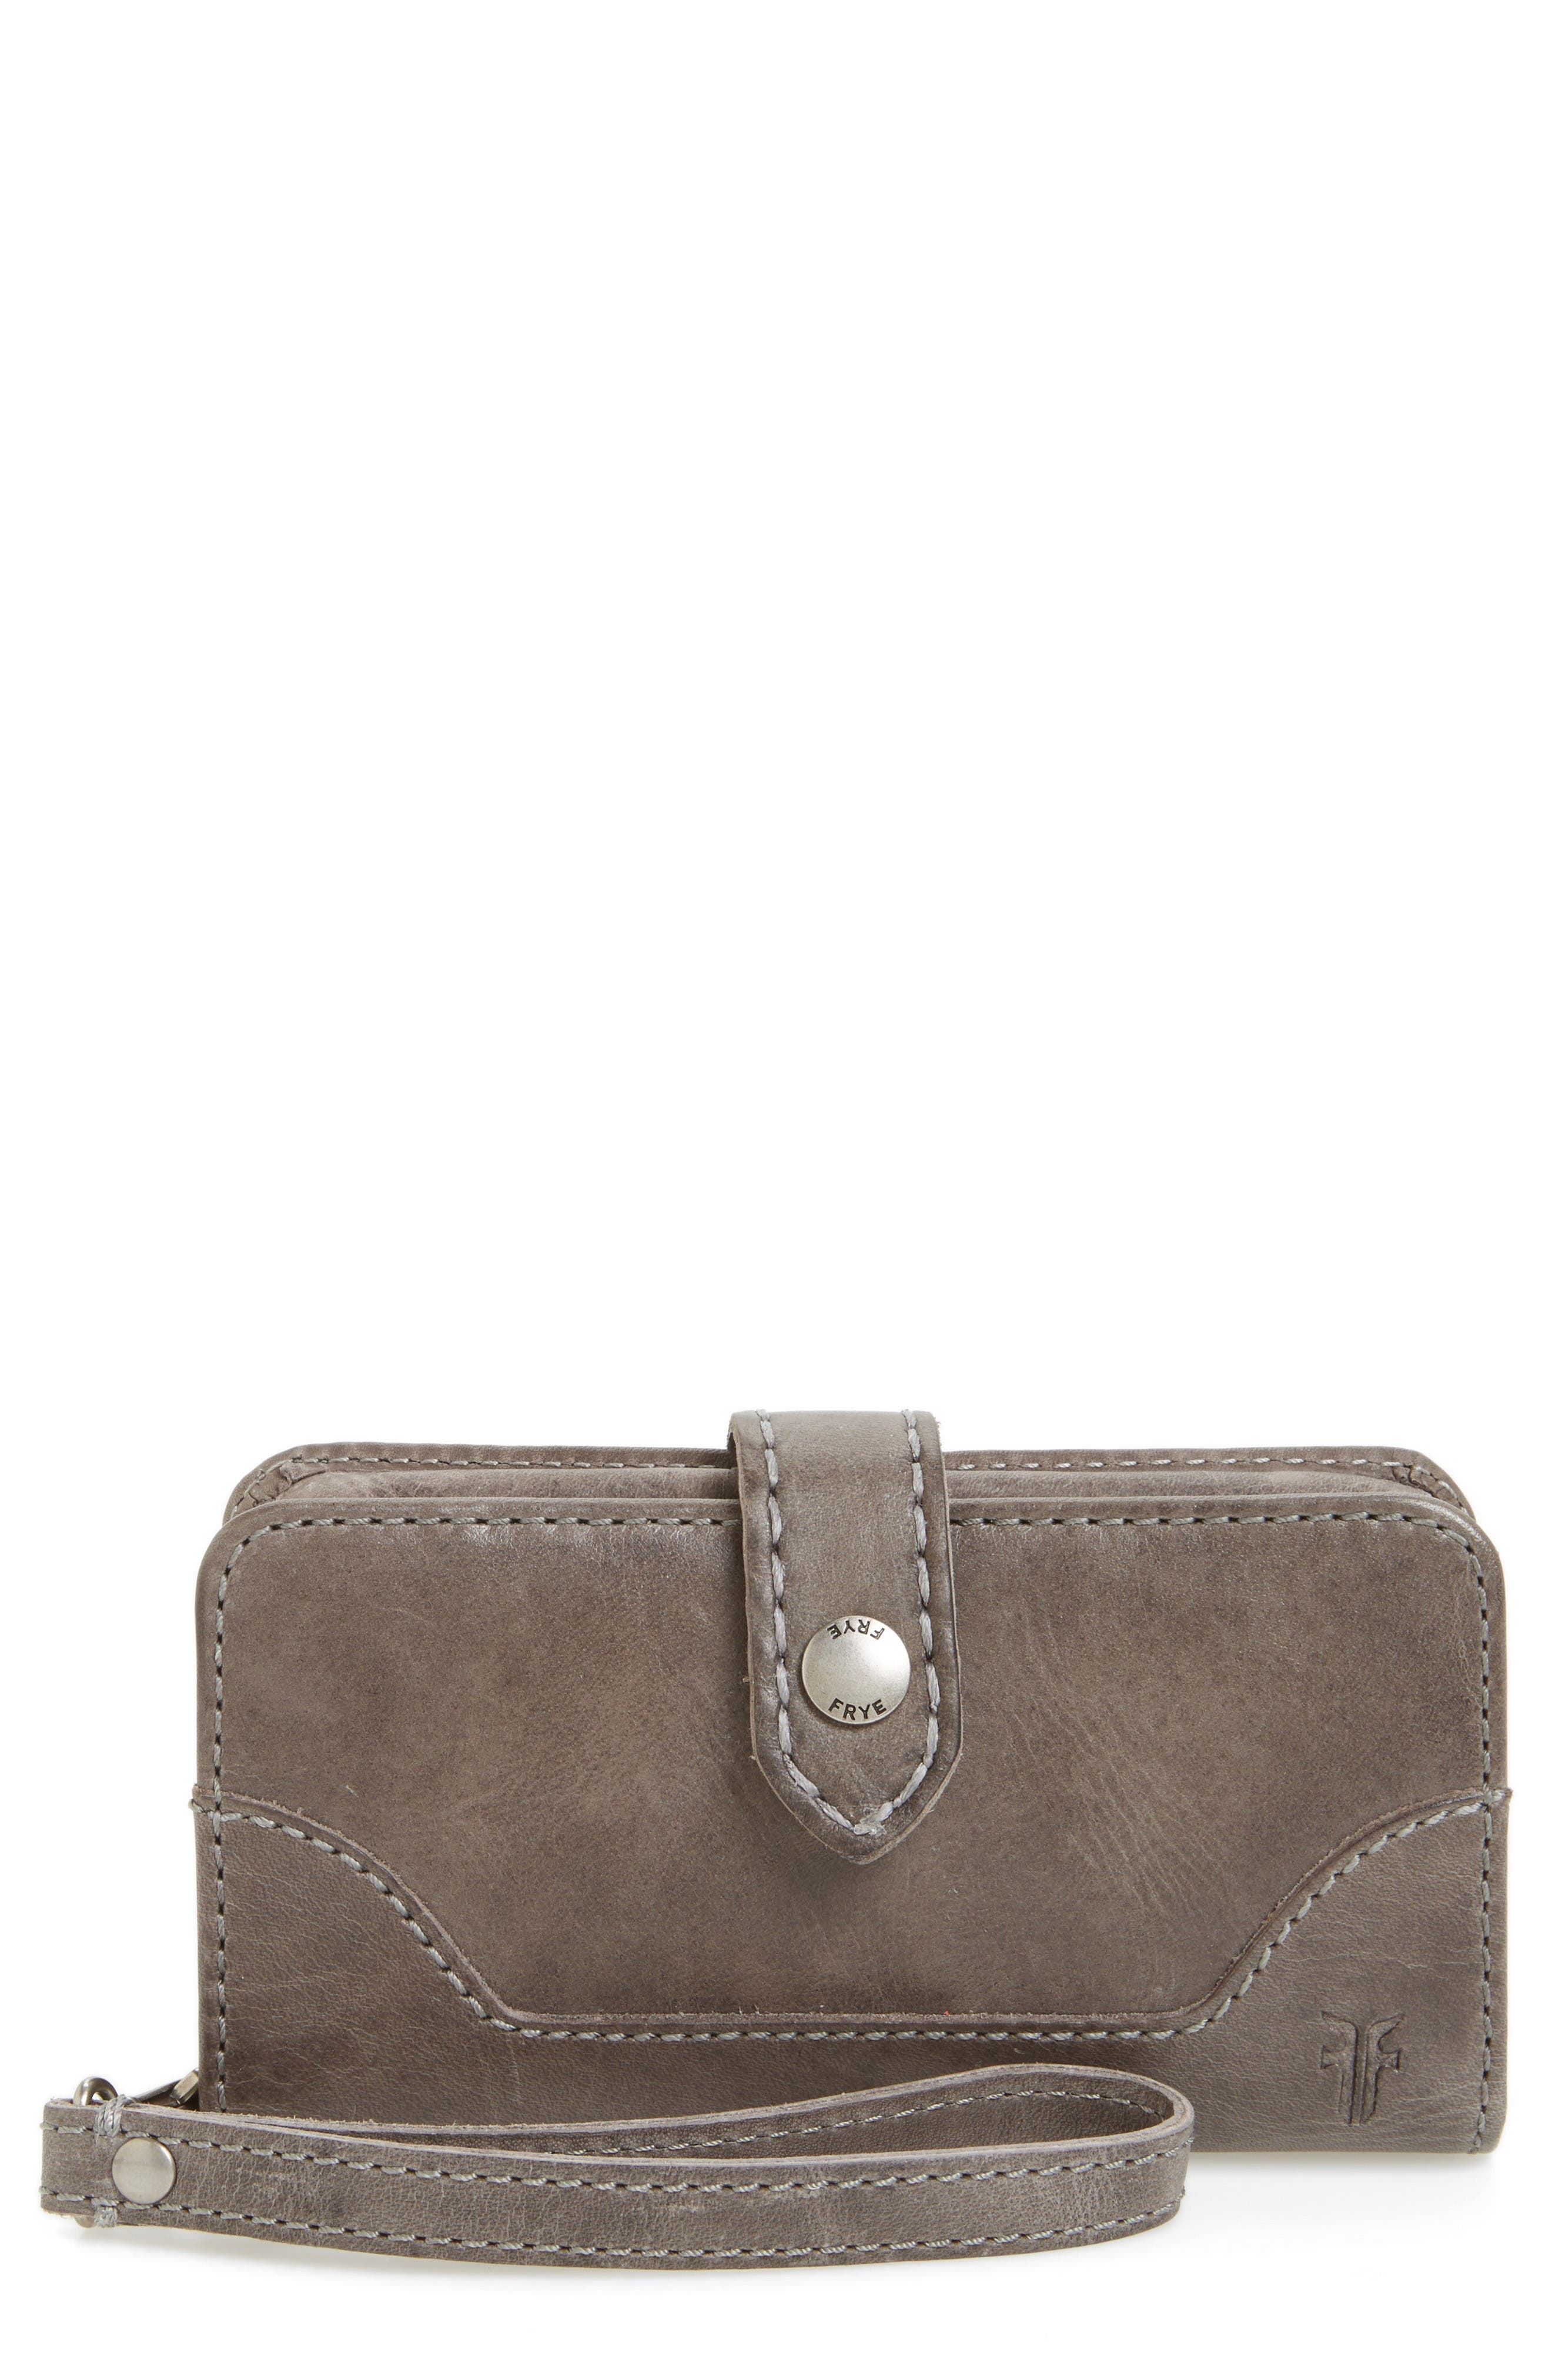 Frye 'Melissa' Leather Phone Wallet